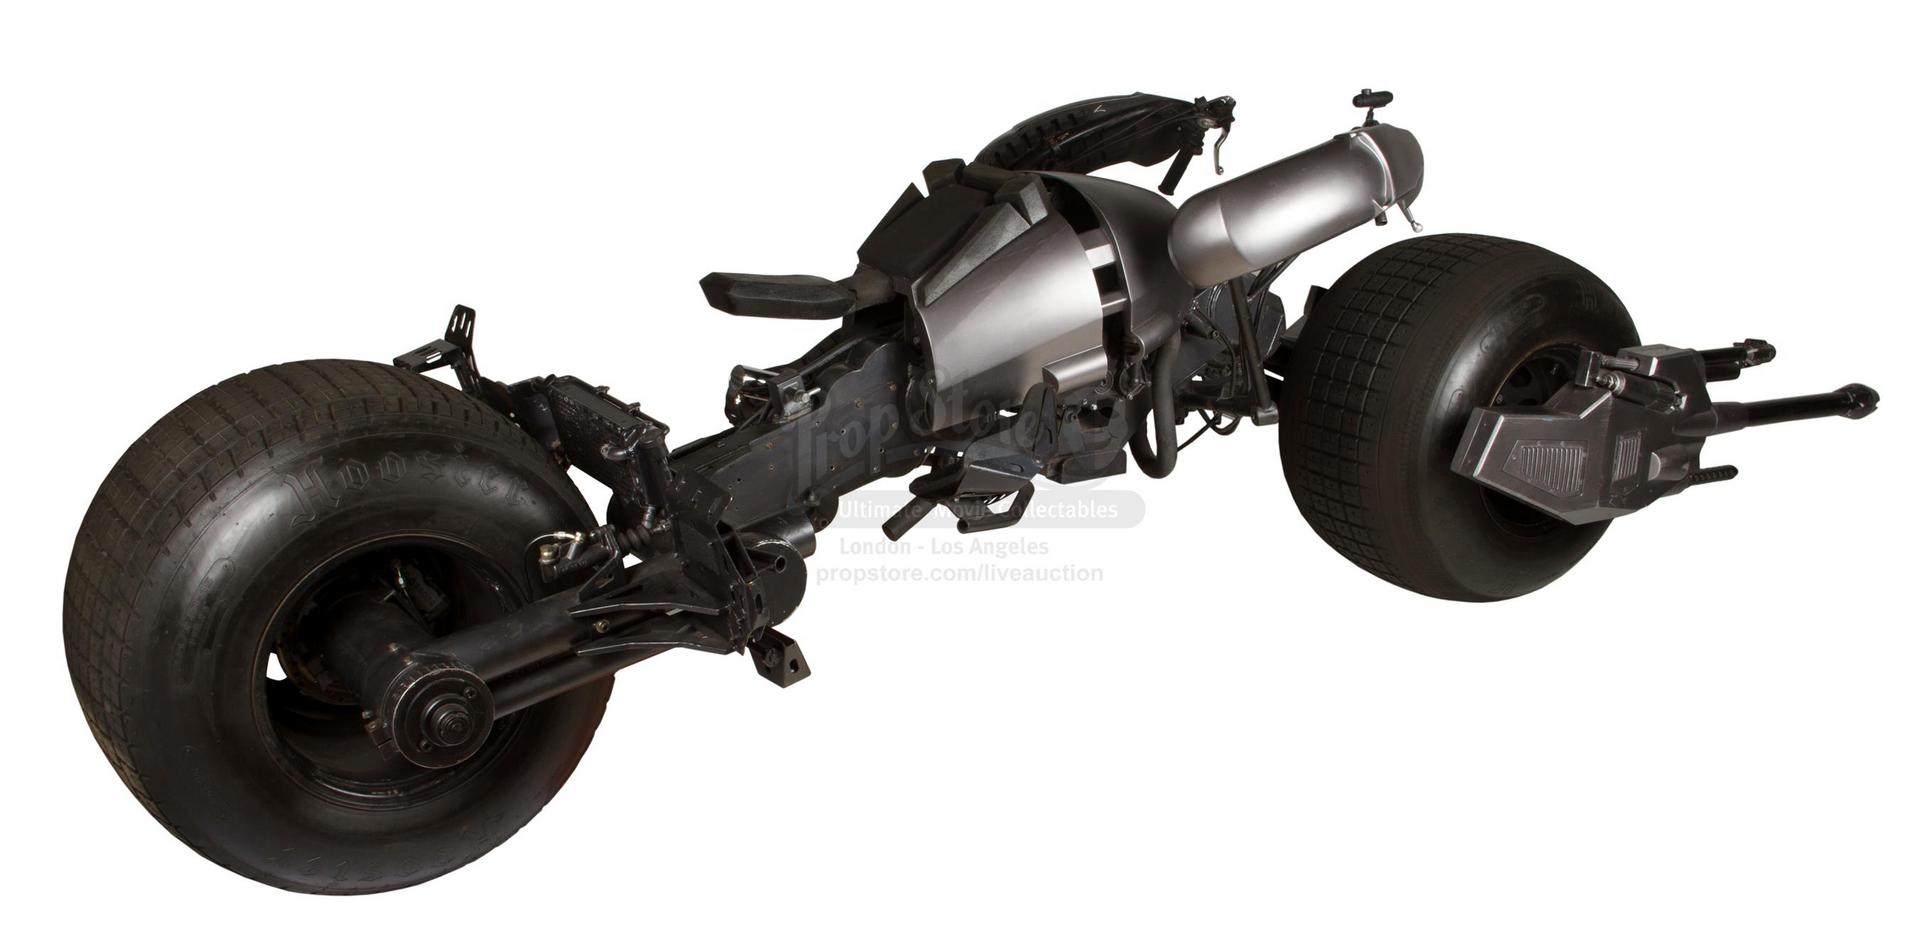 dark-knight-trilogys-batpod-motorcycle-is-up-for-auction_3